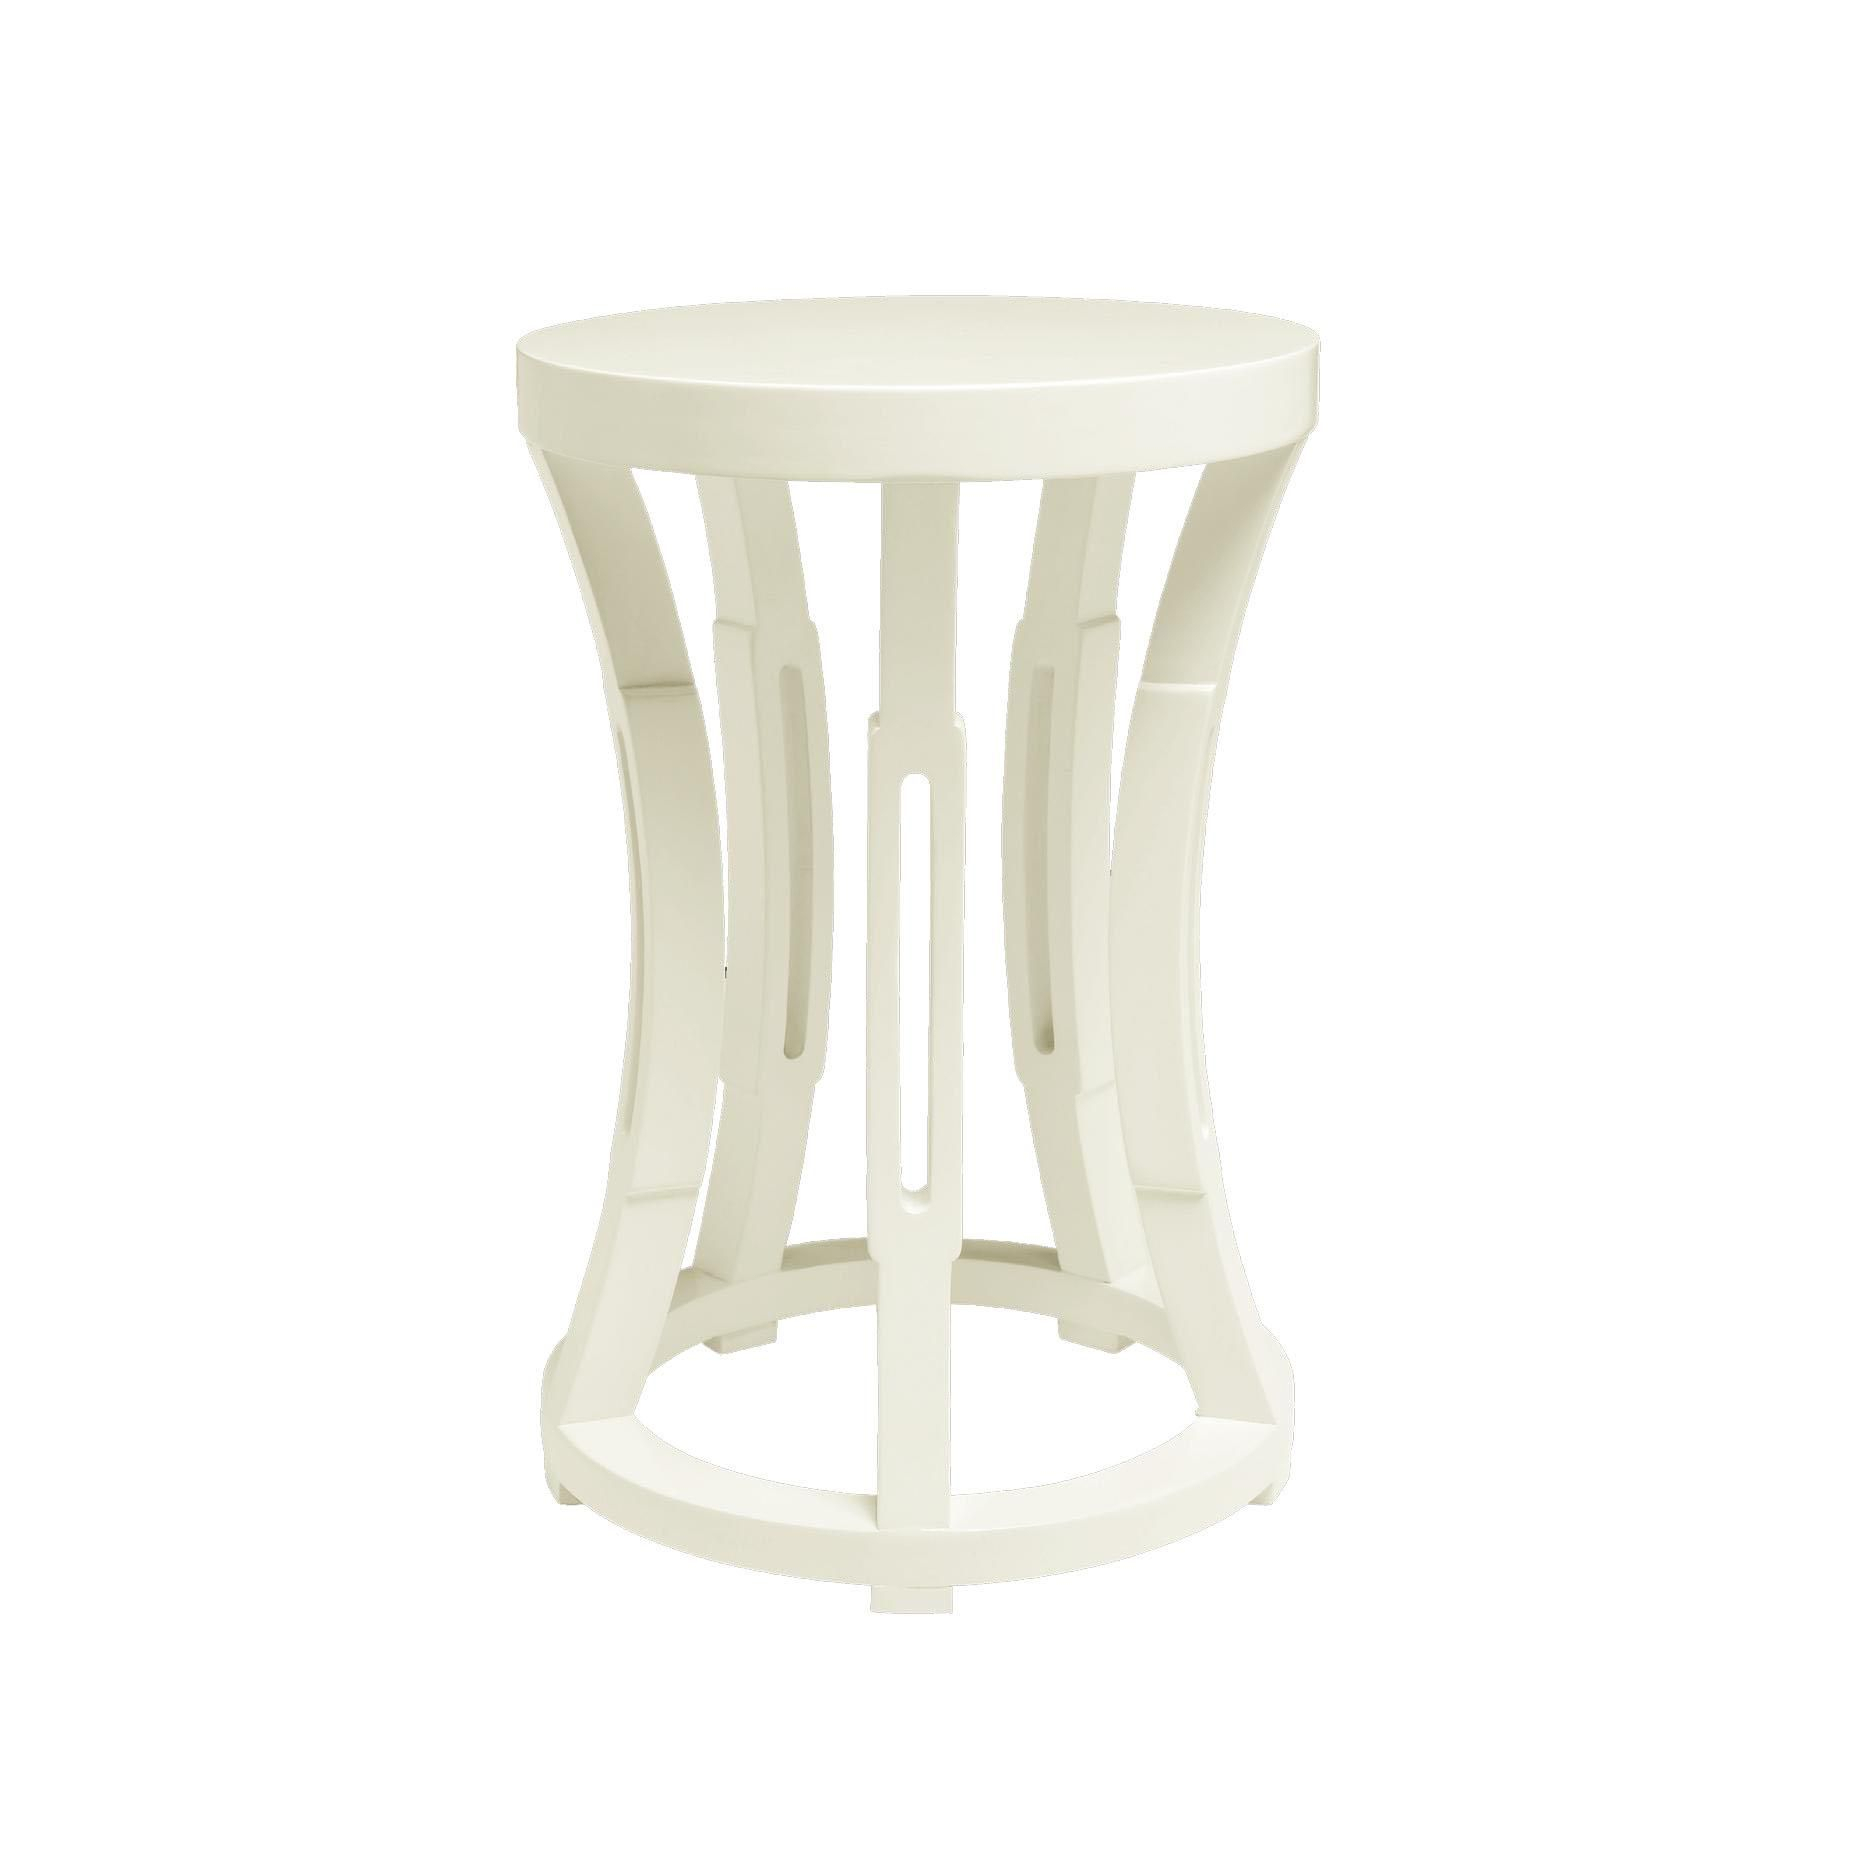 Hourglass Side Table In White | White Side Tables, Side In Svendsen Ceramic Garden Stools (View 18 of 25)